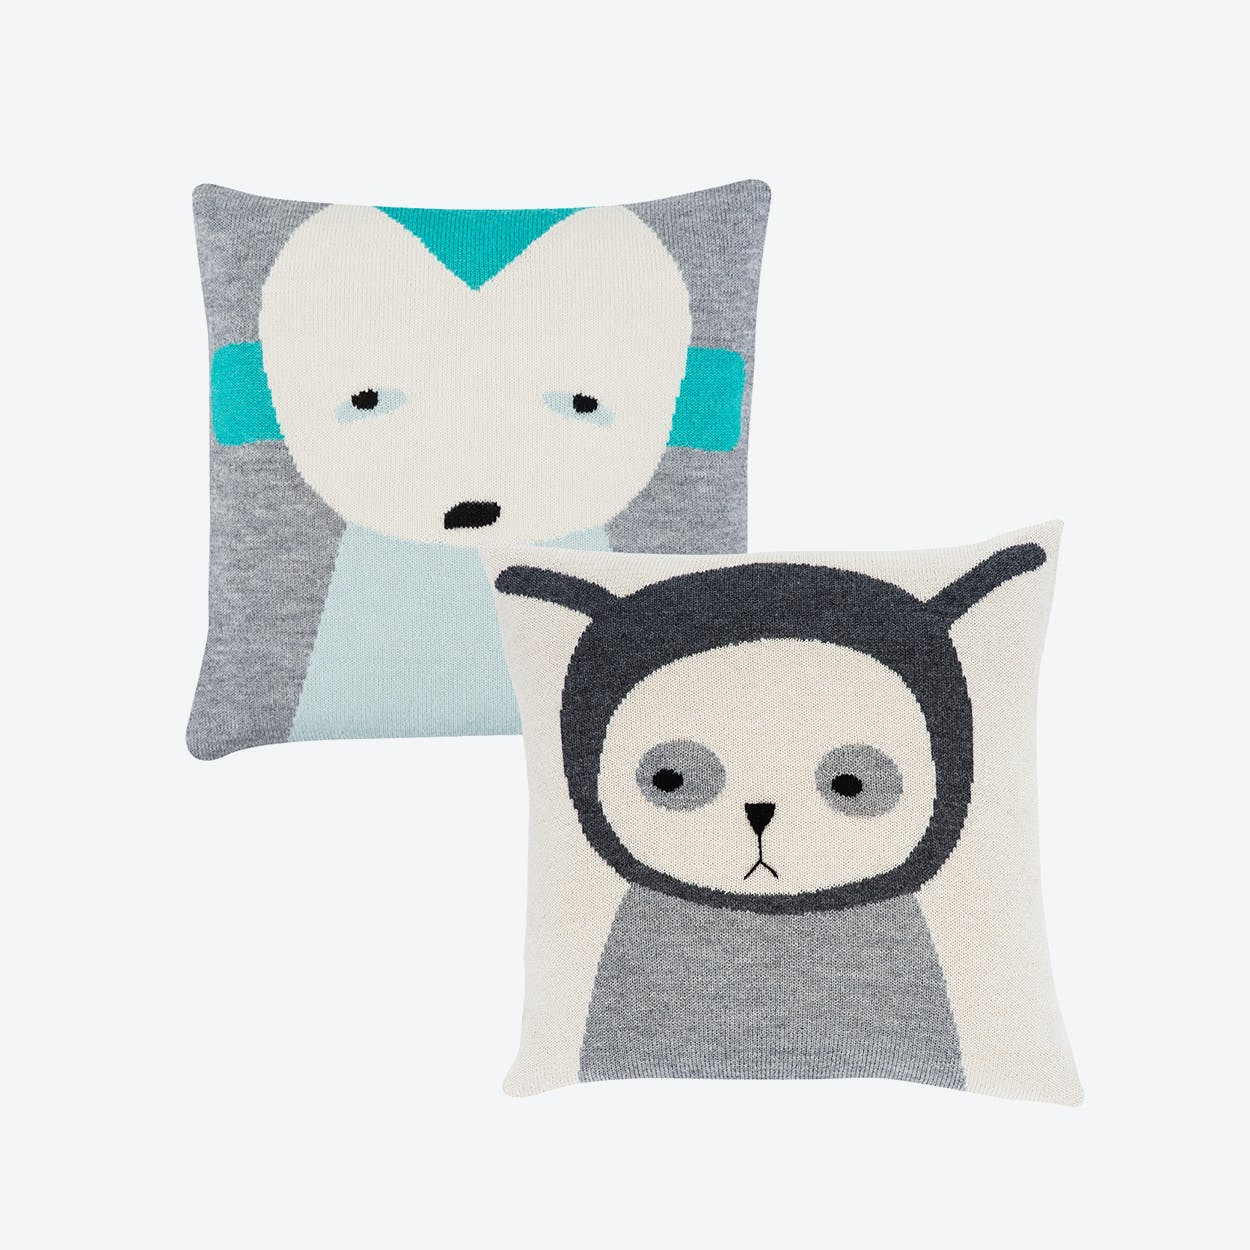 Peppe + Nulle Cushion Case (Set of 2)